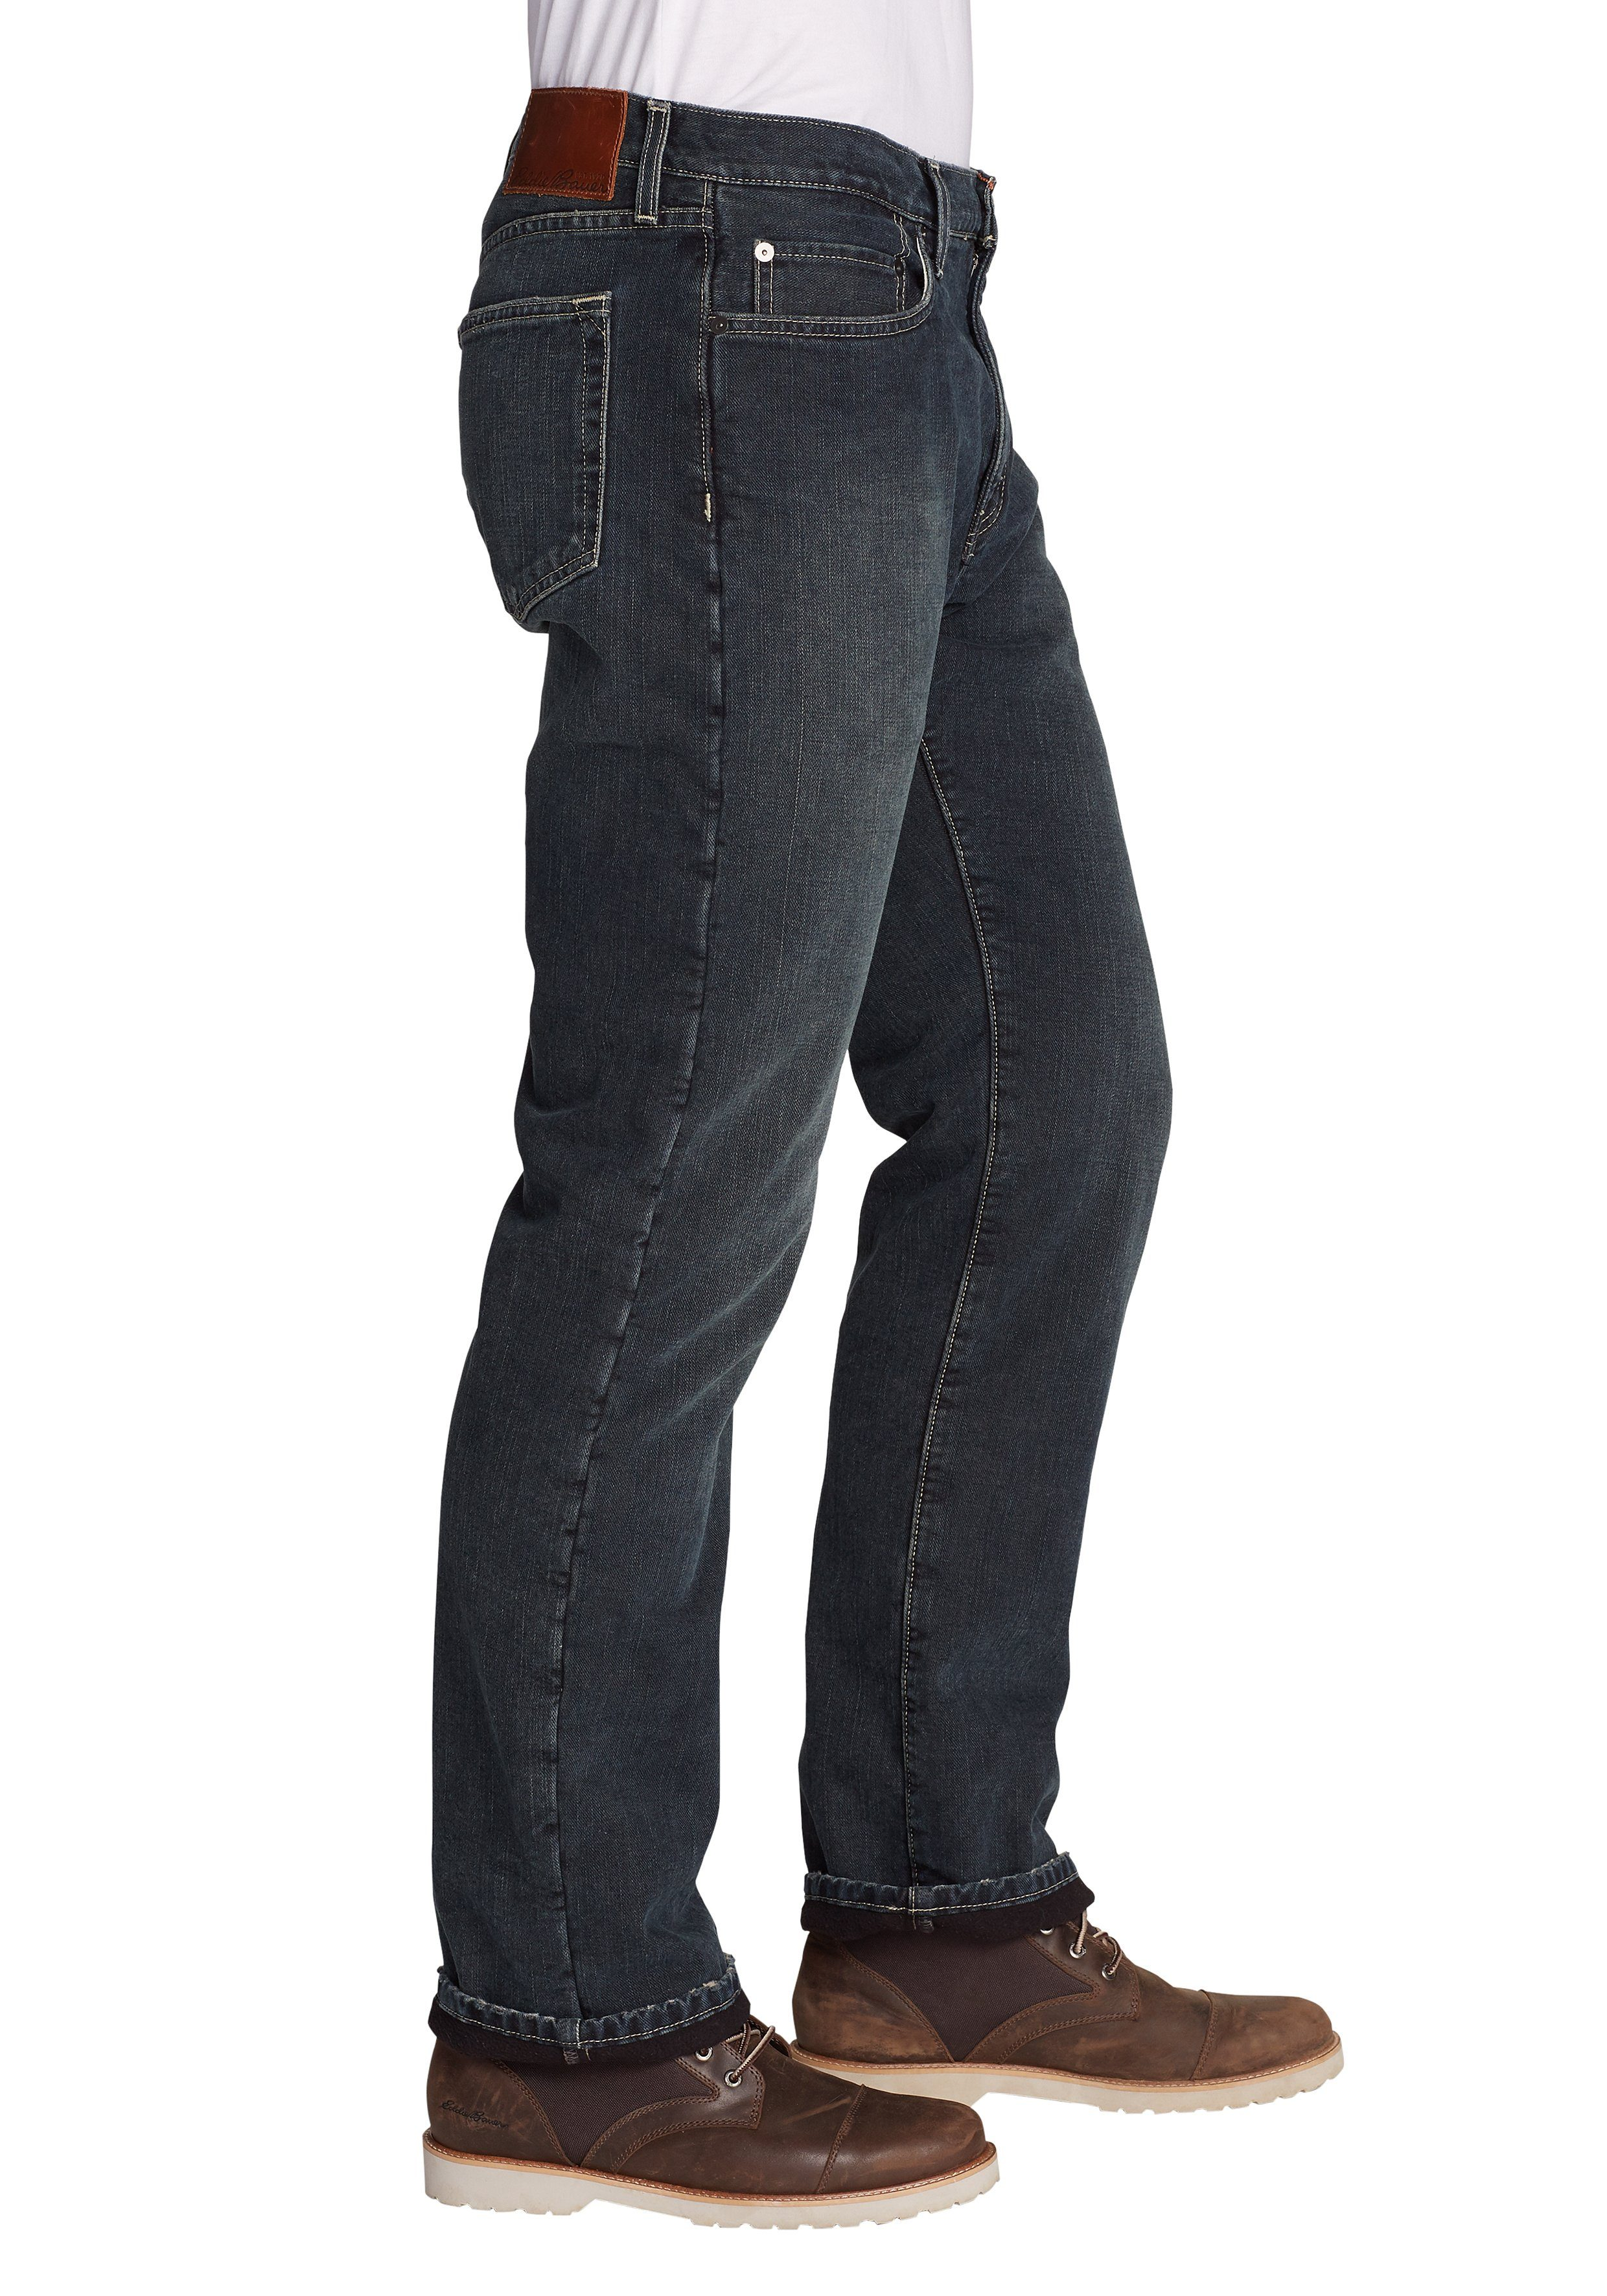 Eddie Bauer 5-Pocket-Jeans Authentic Jeans mit Flanellfutter - Straight Fit